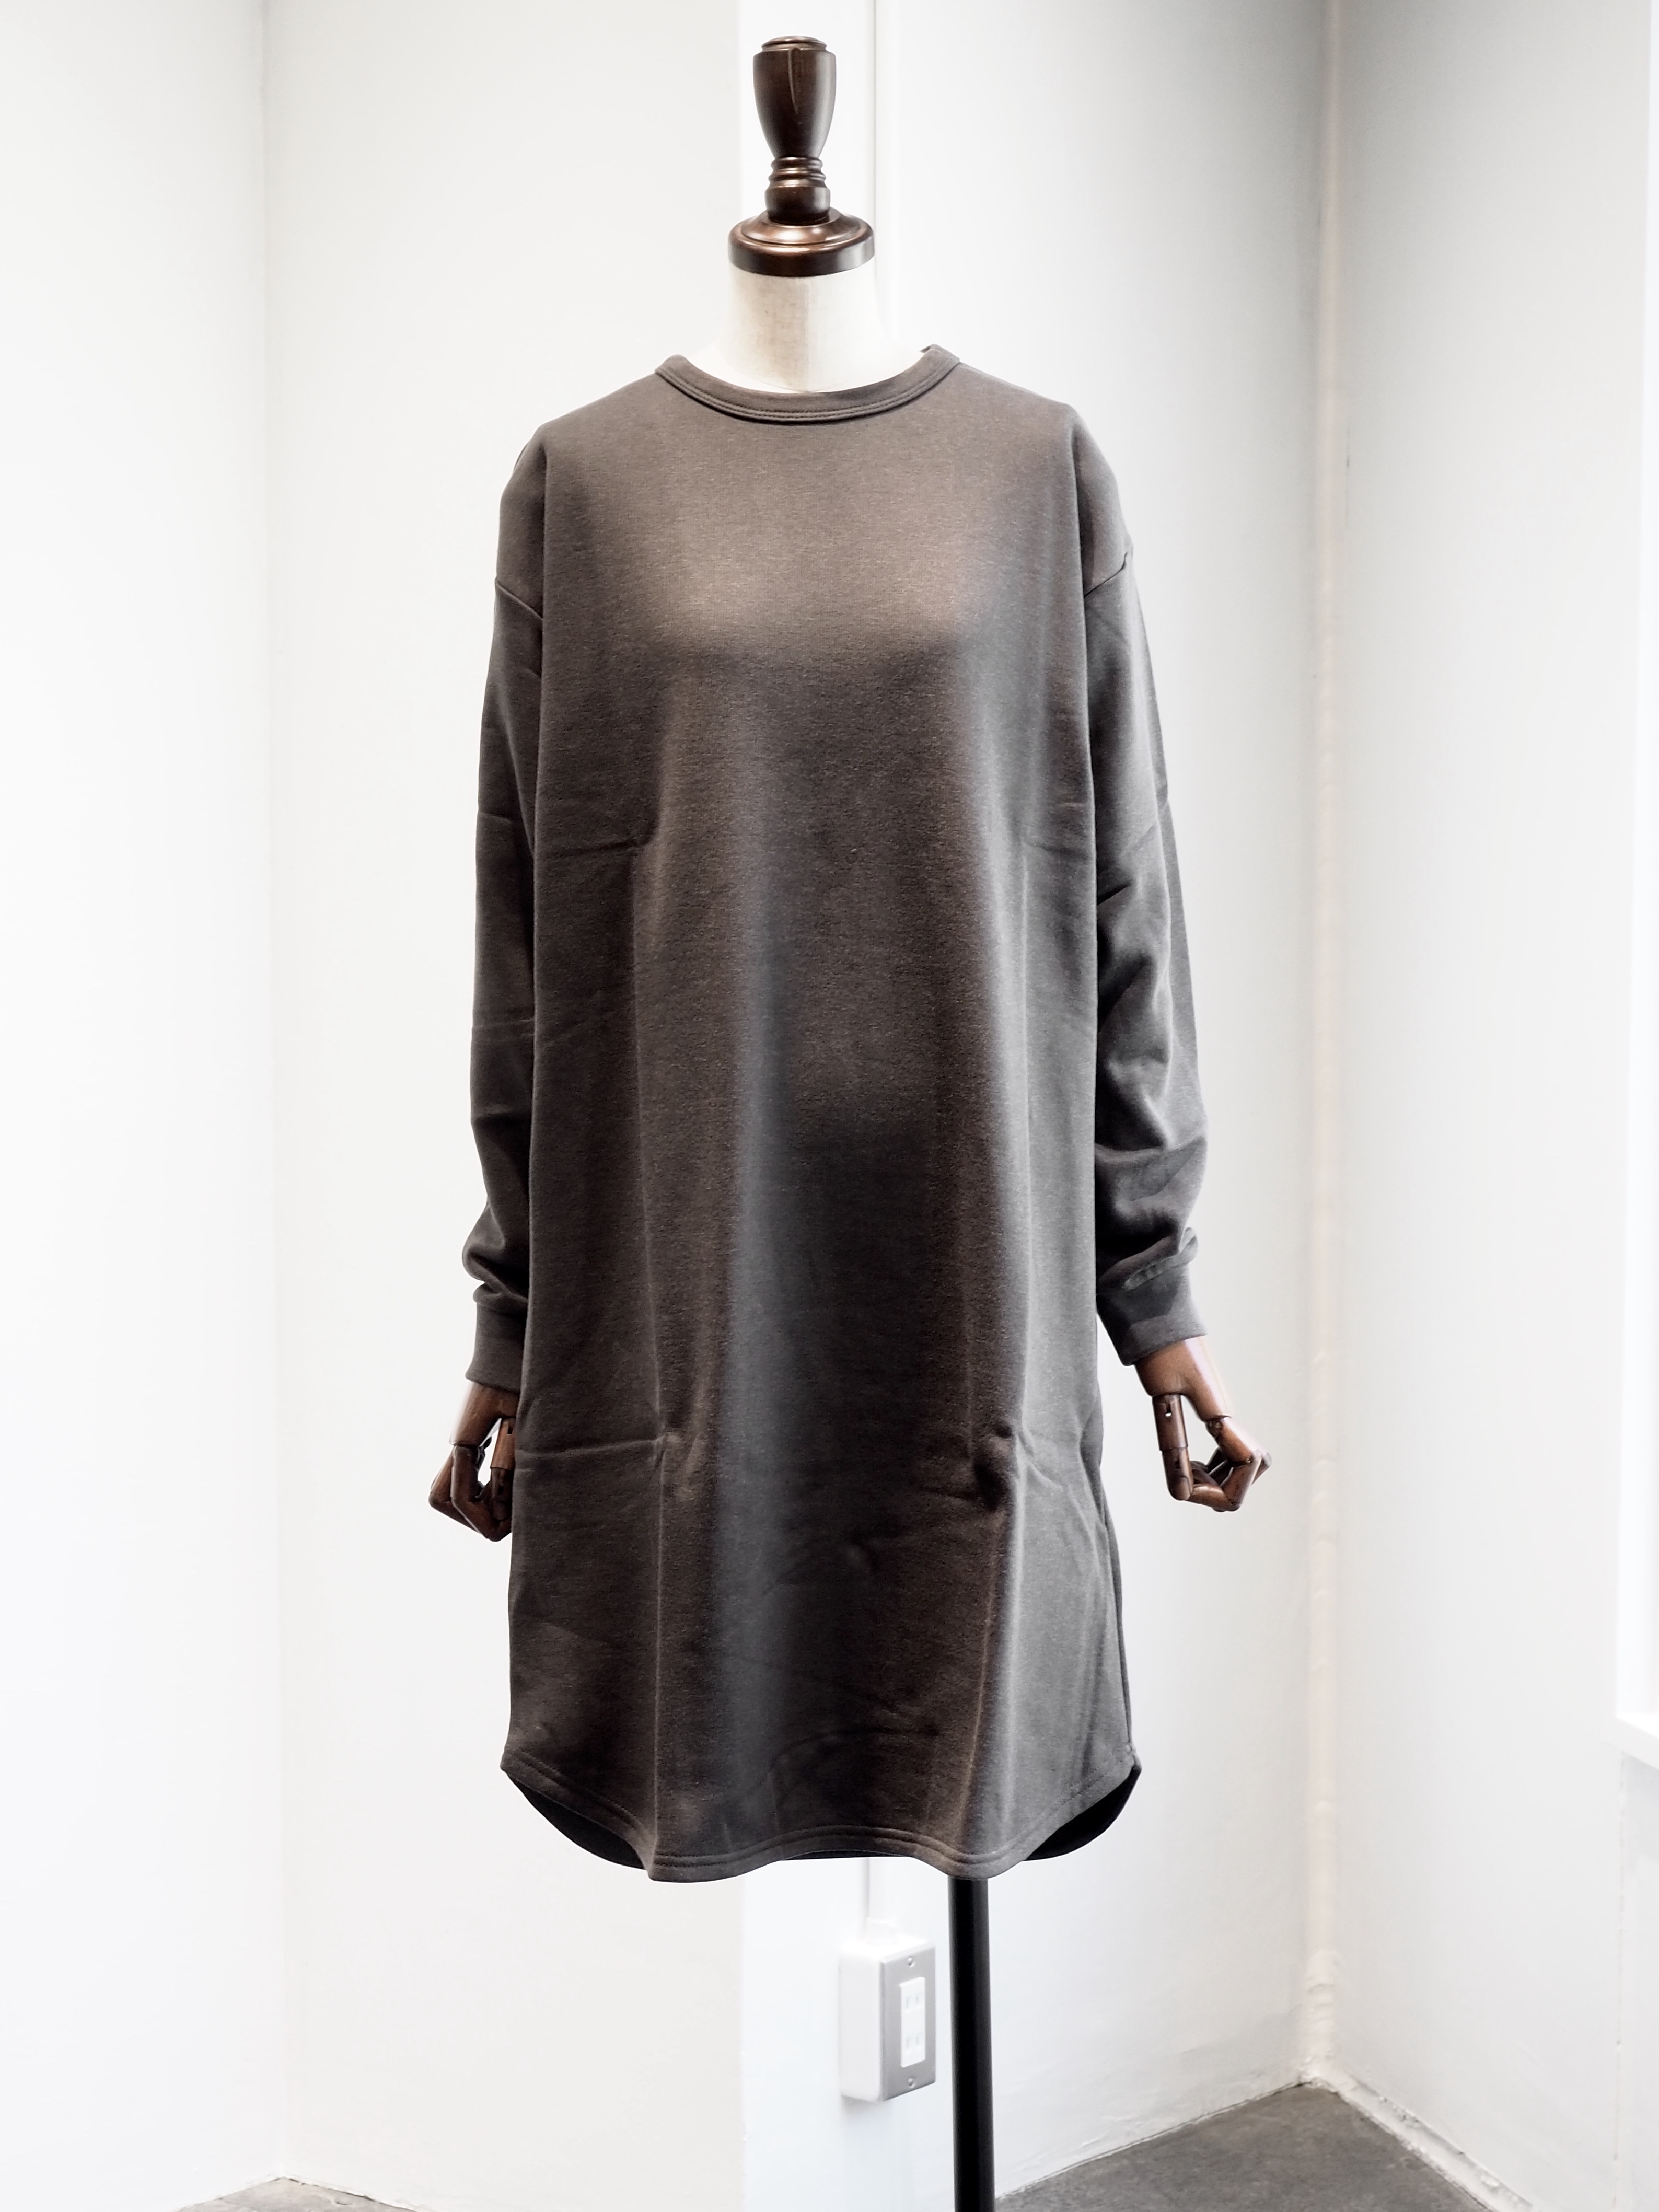 【ENLIGHTENMENT】TUNIC ONEPIECE